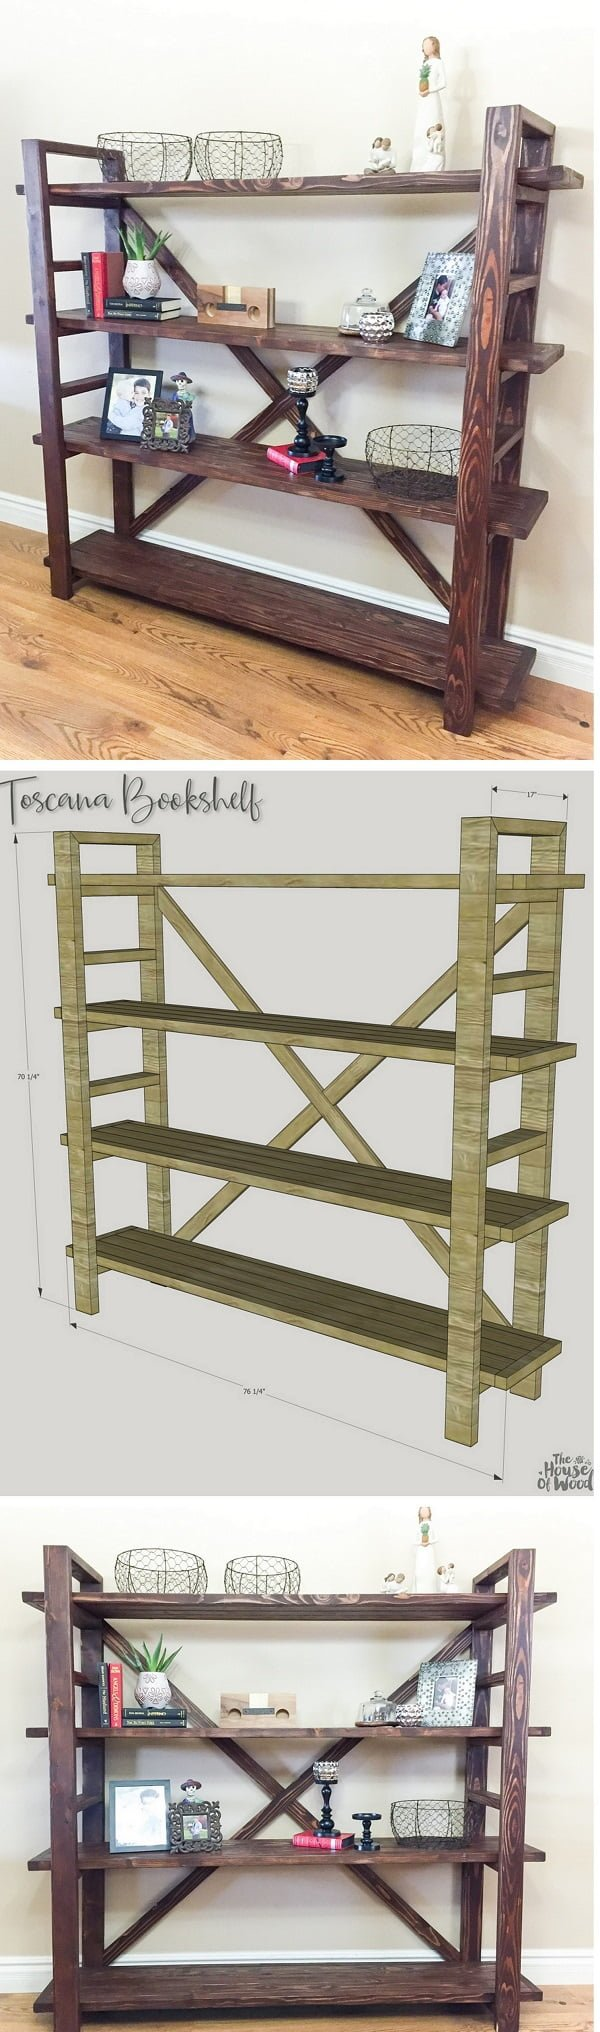 22 Easy DIY Bookshelf Ideas You Can Build at Home - Check out how you can build a DIY Toscana bookshelf yourself